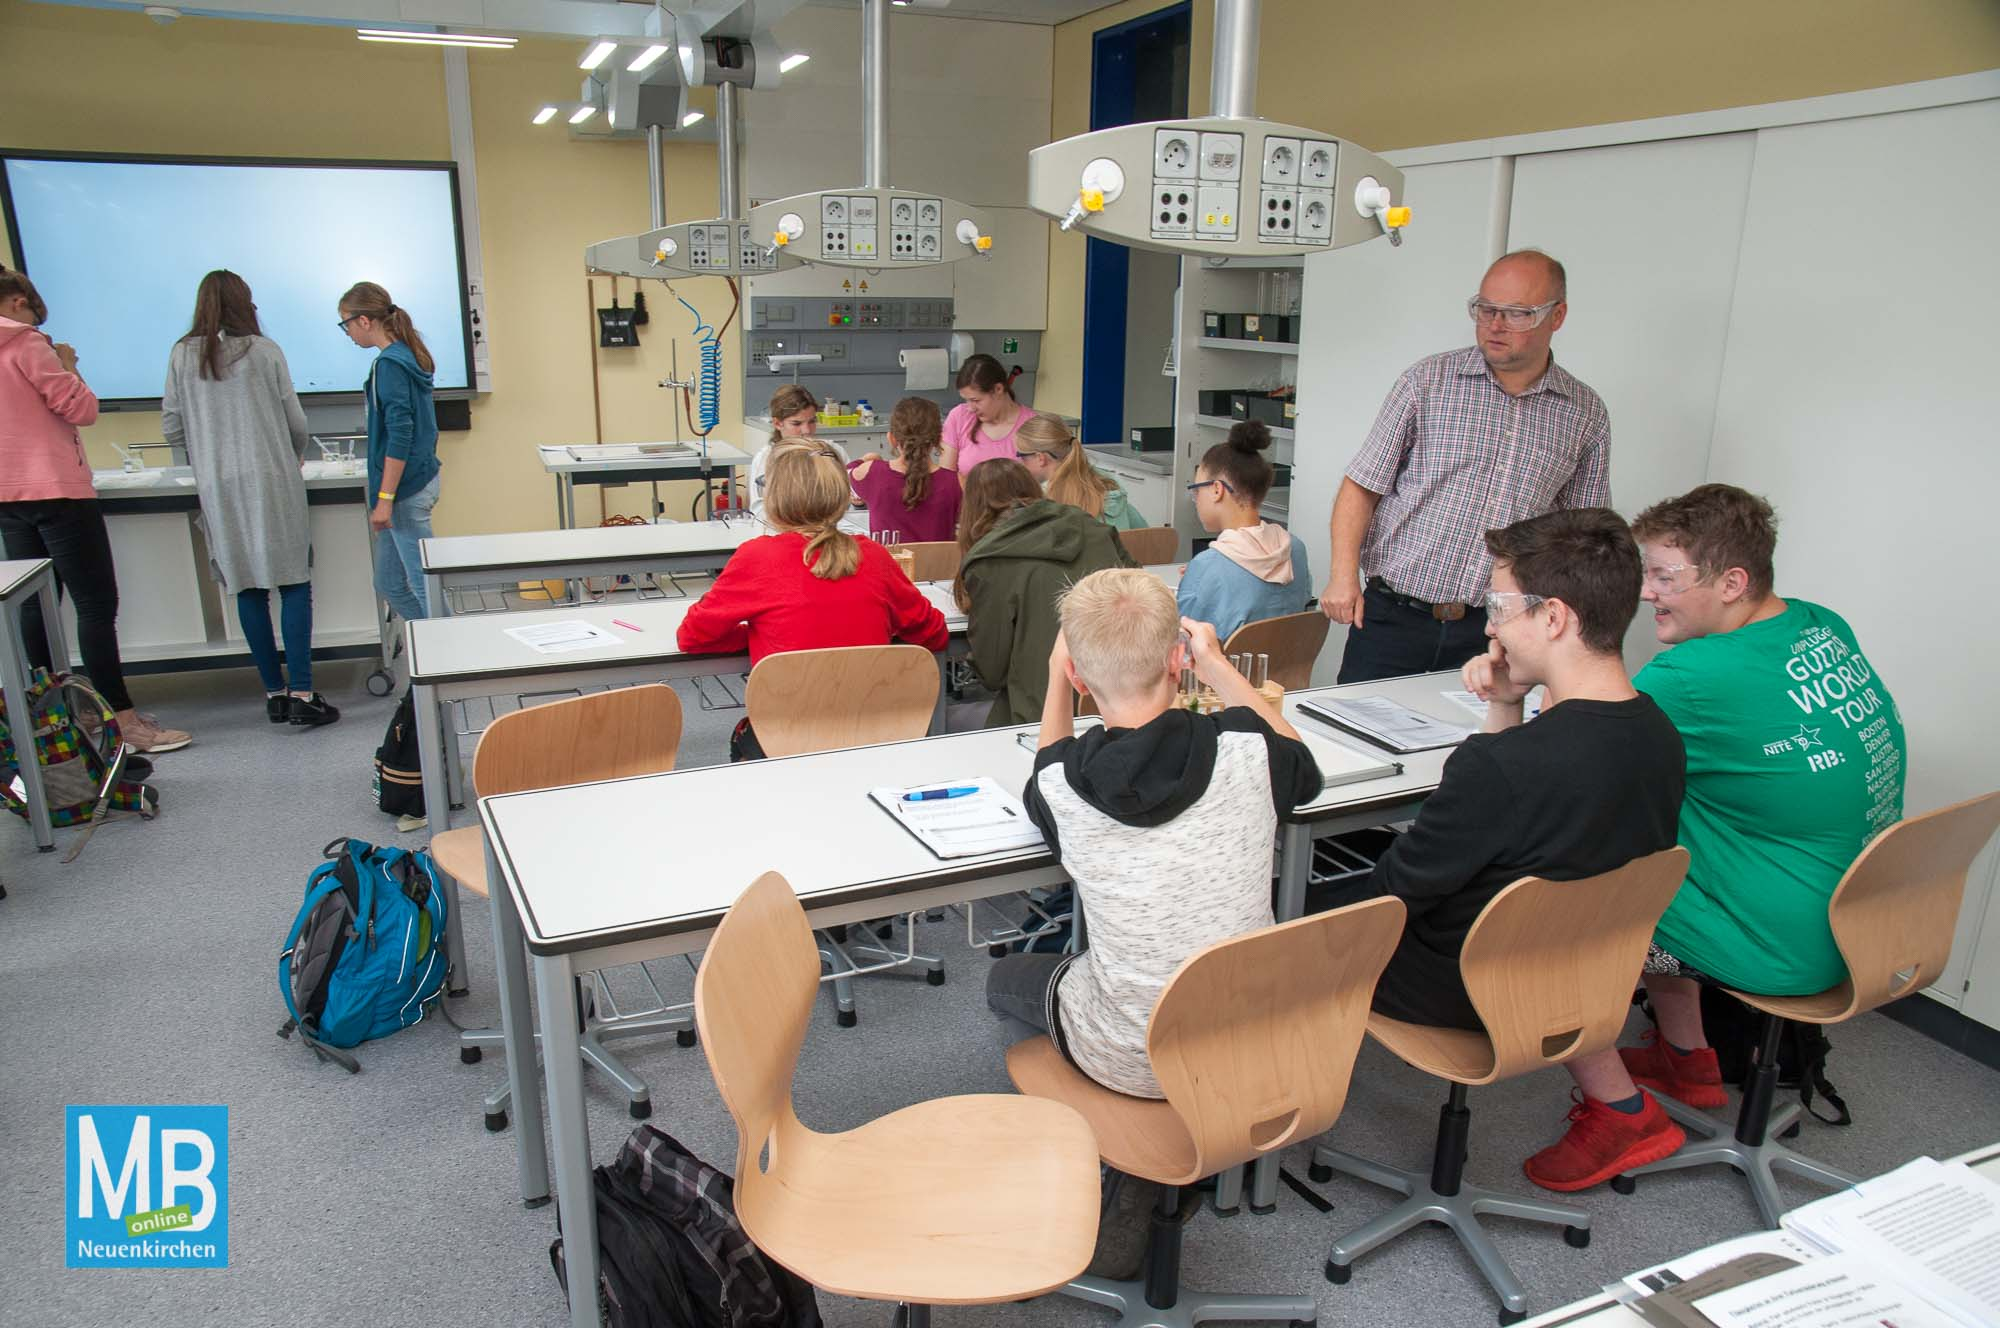 NW-Räume Emmy-Nother-Schule